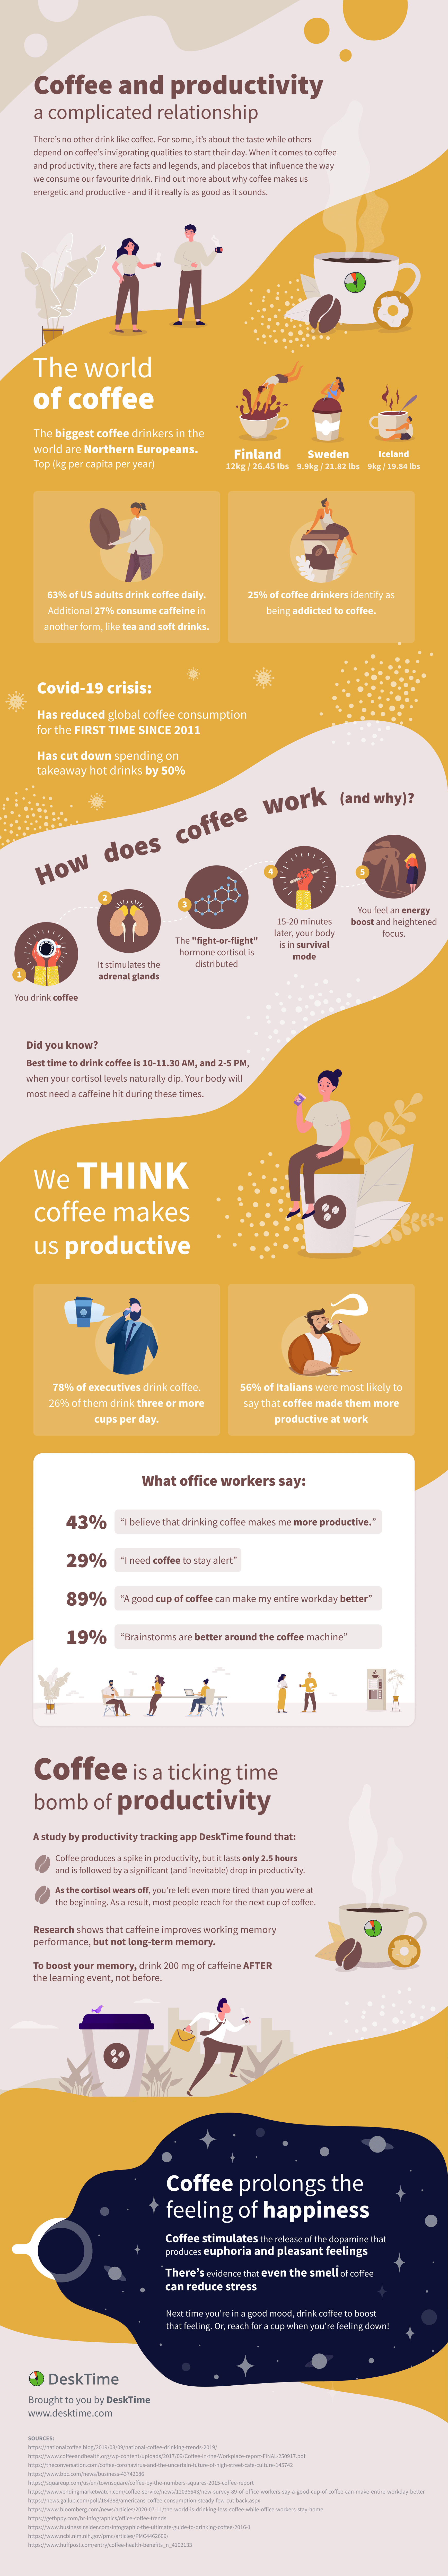 Does Coffee Really Improve Work Performance? [Experiment + Infographic]